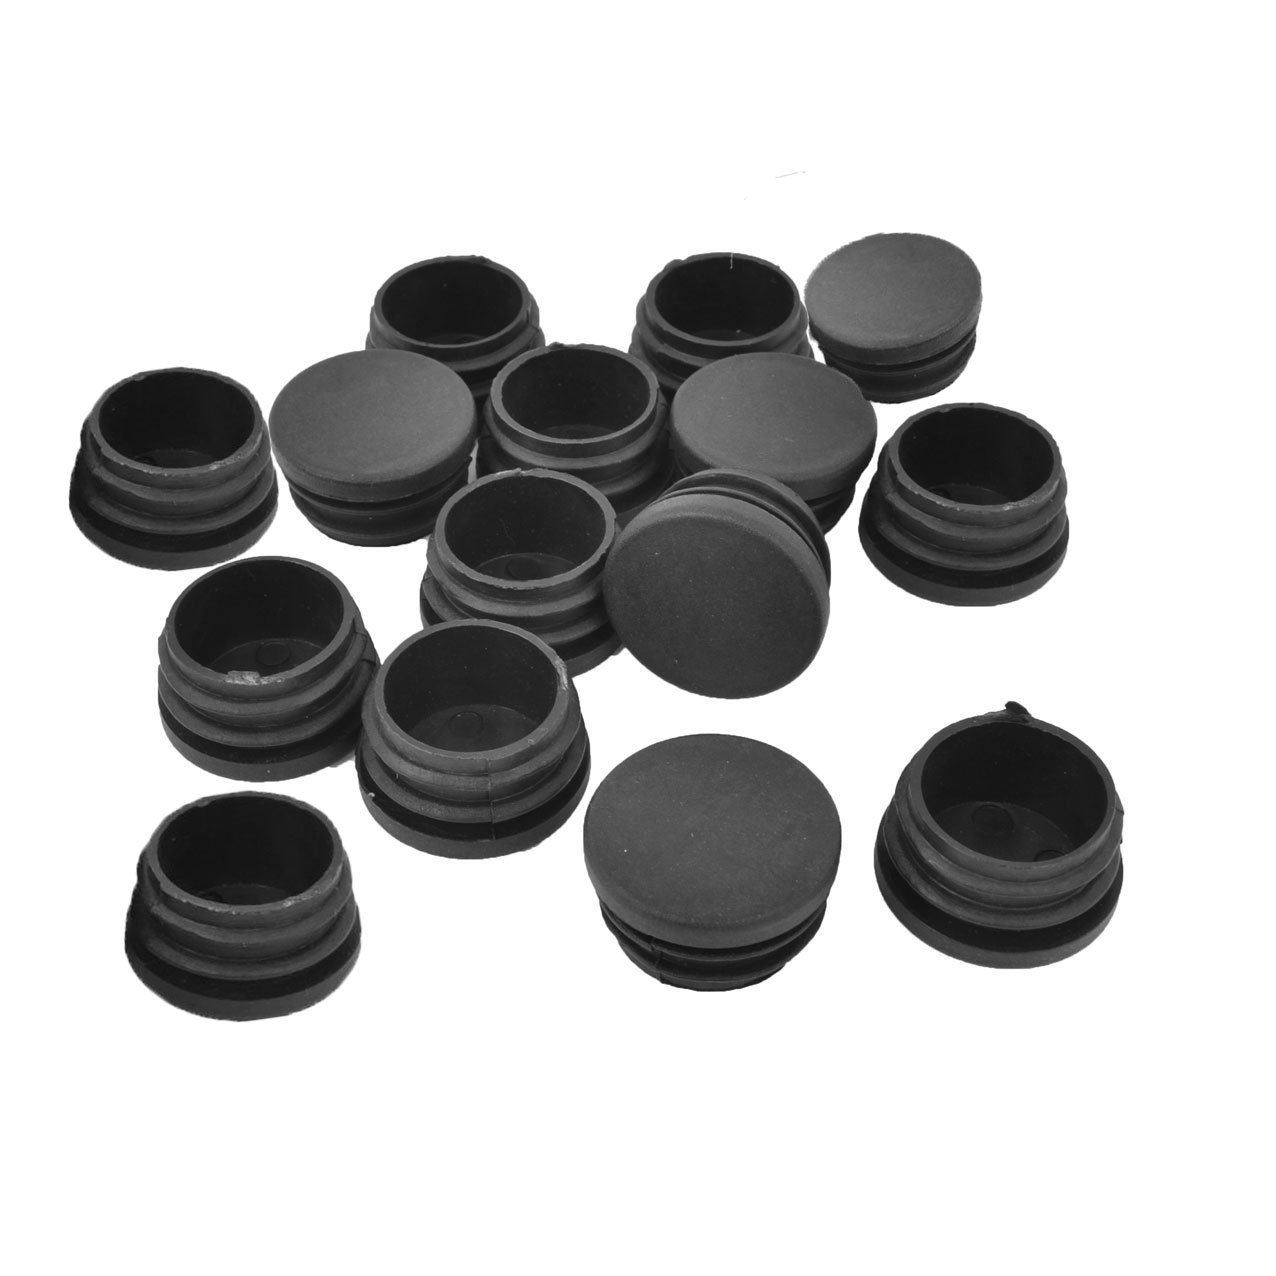 Ldexin 15pcs round plastic plug end tube insert cap furniture foot legs chair table glide covers protector pipe tubing end caps black amazon com